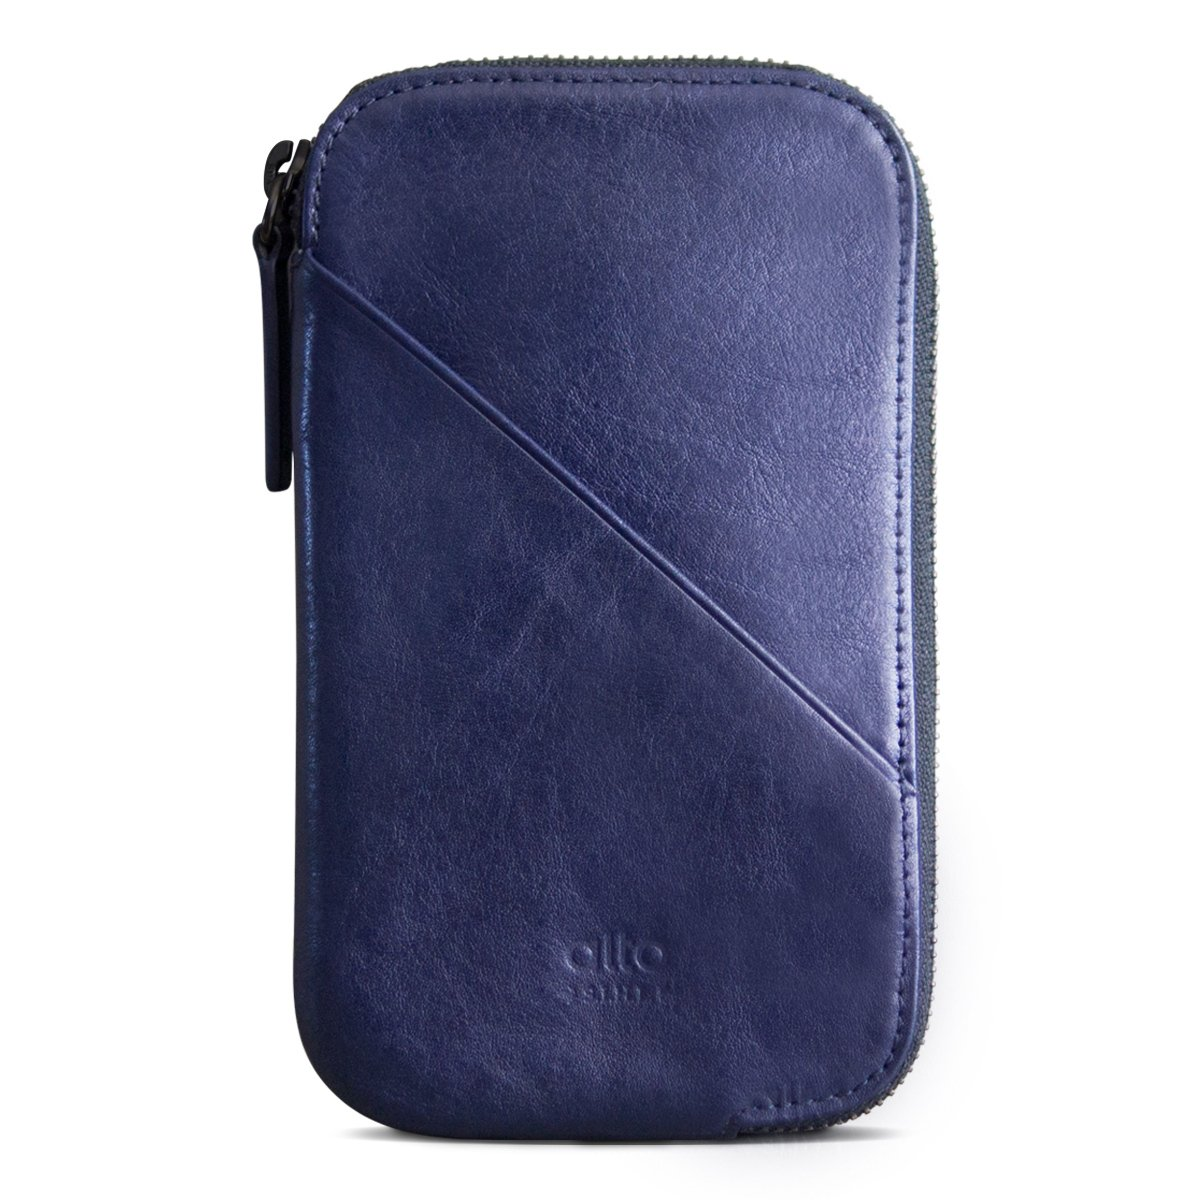 alto Handmade Premium Italian Leather for Apple iPhone 7 / iPhone 7 Plus/iPhone 8 / iPhone 8 Plus/iPhone X Travel Phone Wallet (Navy) by Alto